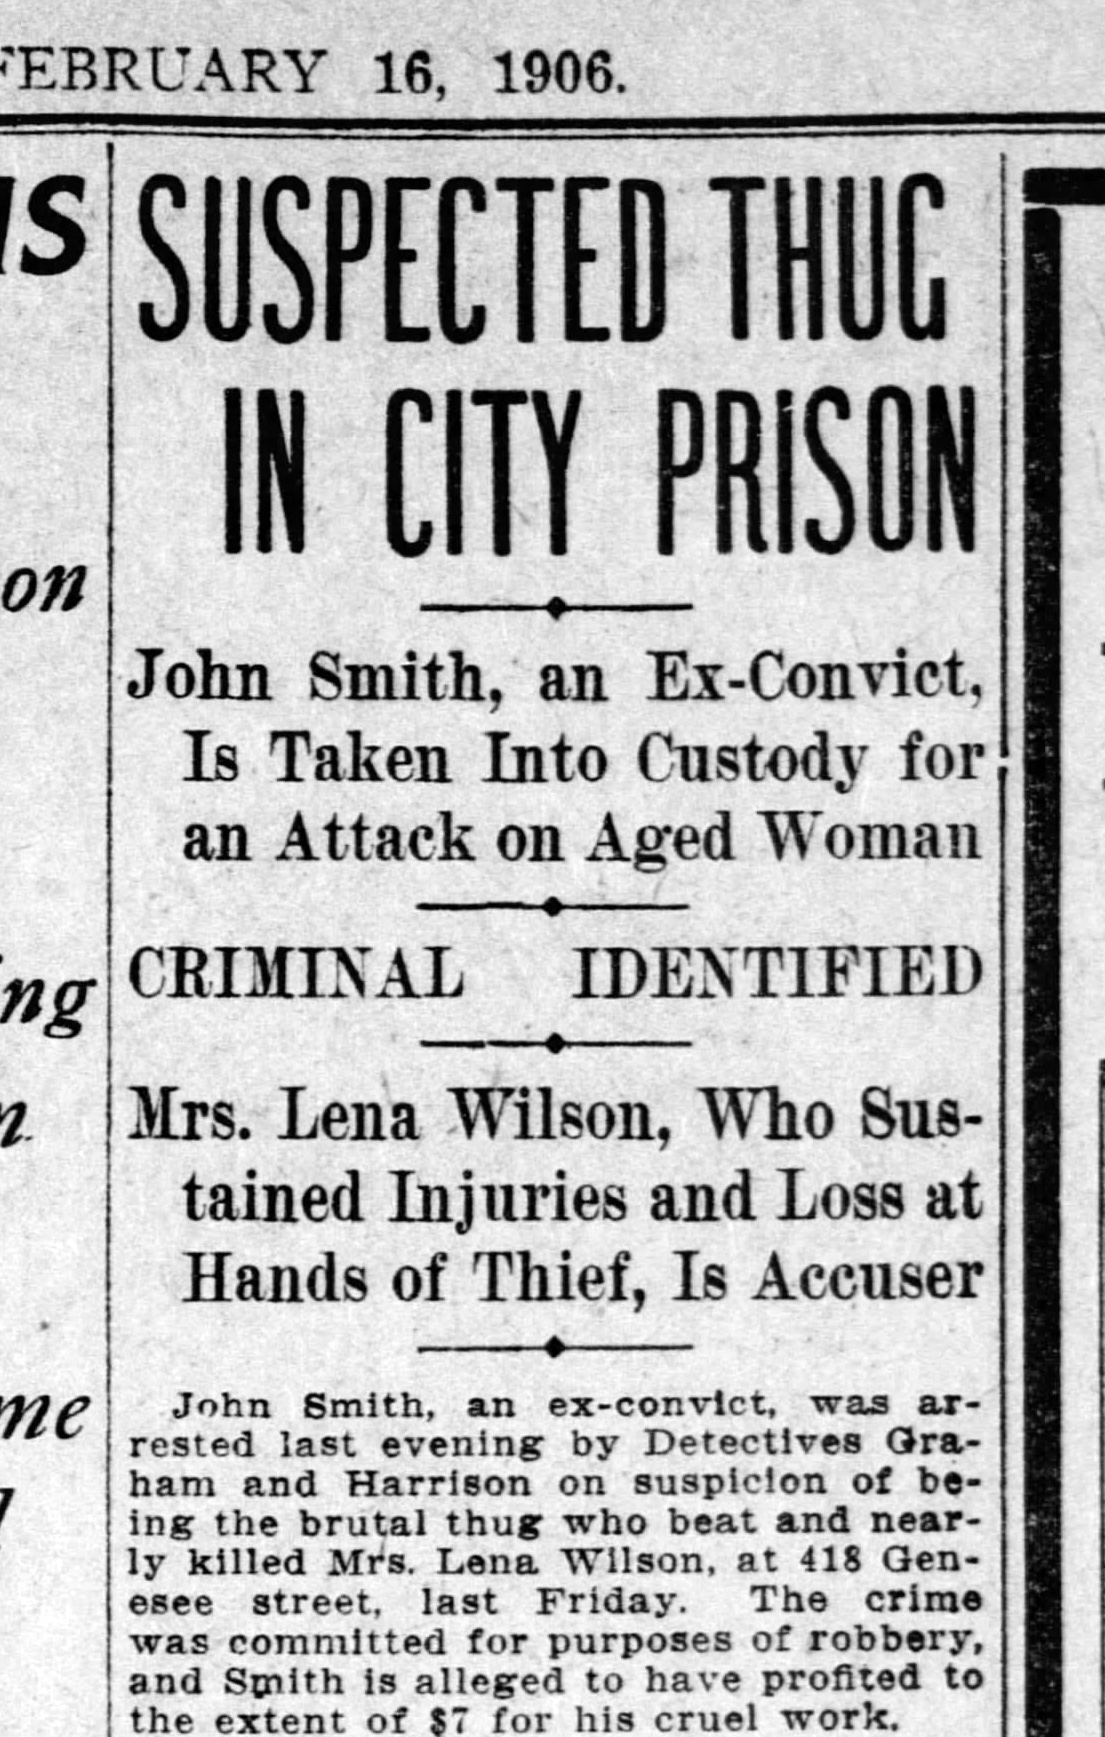 Suspect John Smith taken into custody. SF Call, 16 Feb 1906, p.5.